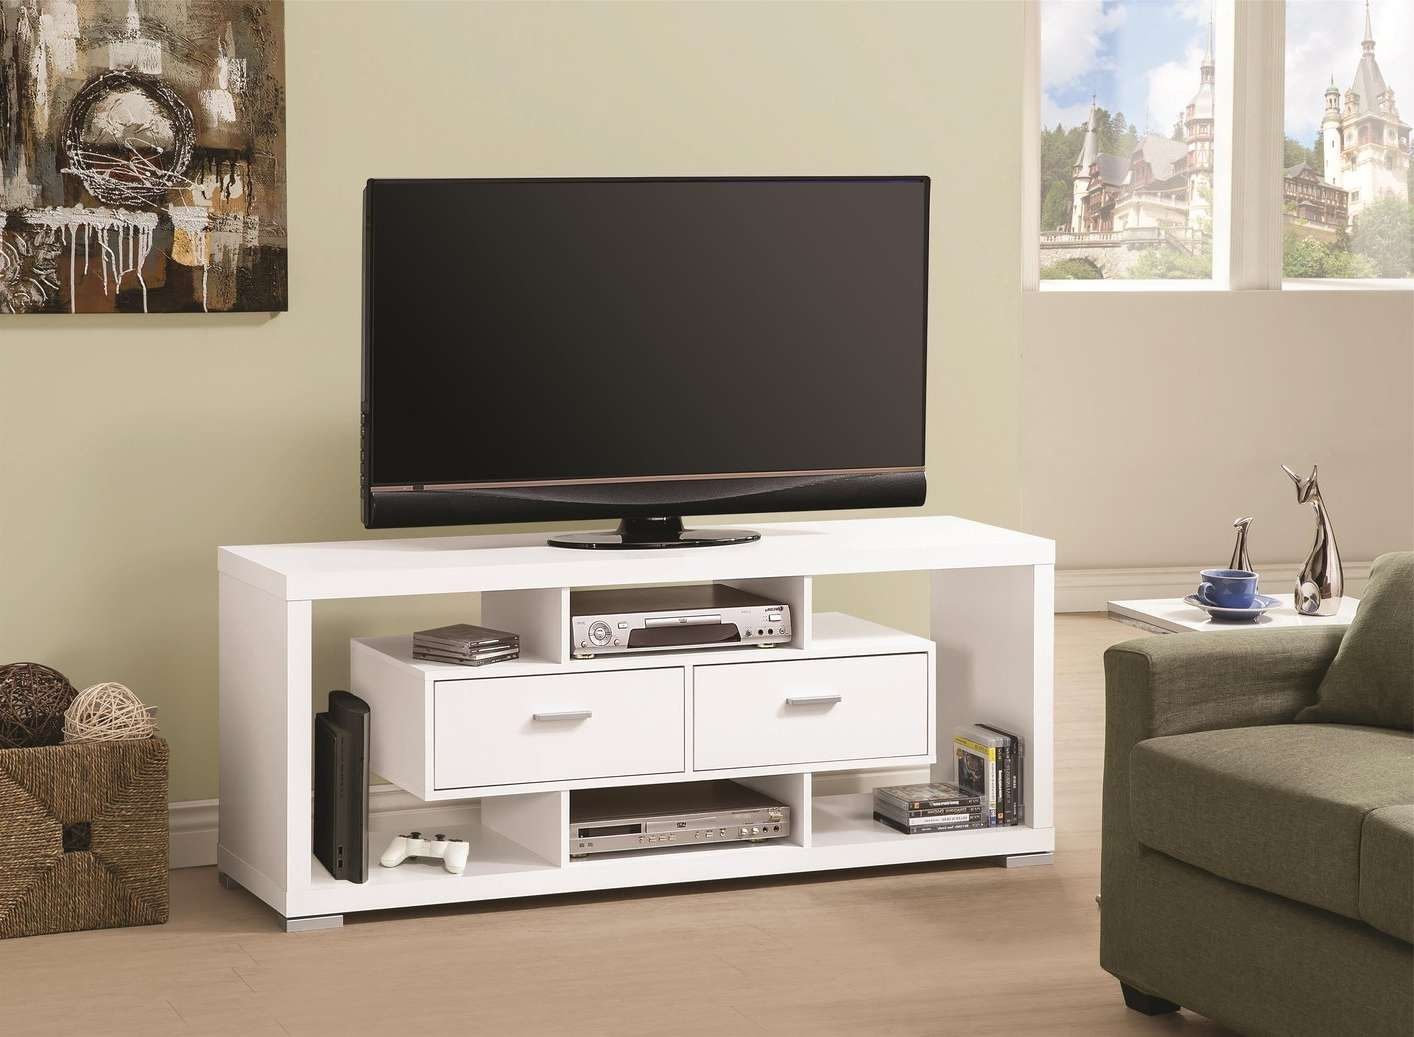 White Wood Tv Stand – Steal A Sofa Furniture Outlet Los Angeles Ca Intended For White Wooden Tv Stands (View 2 of 20)